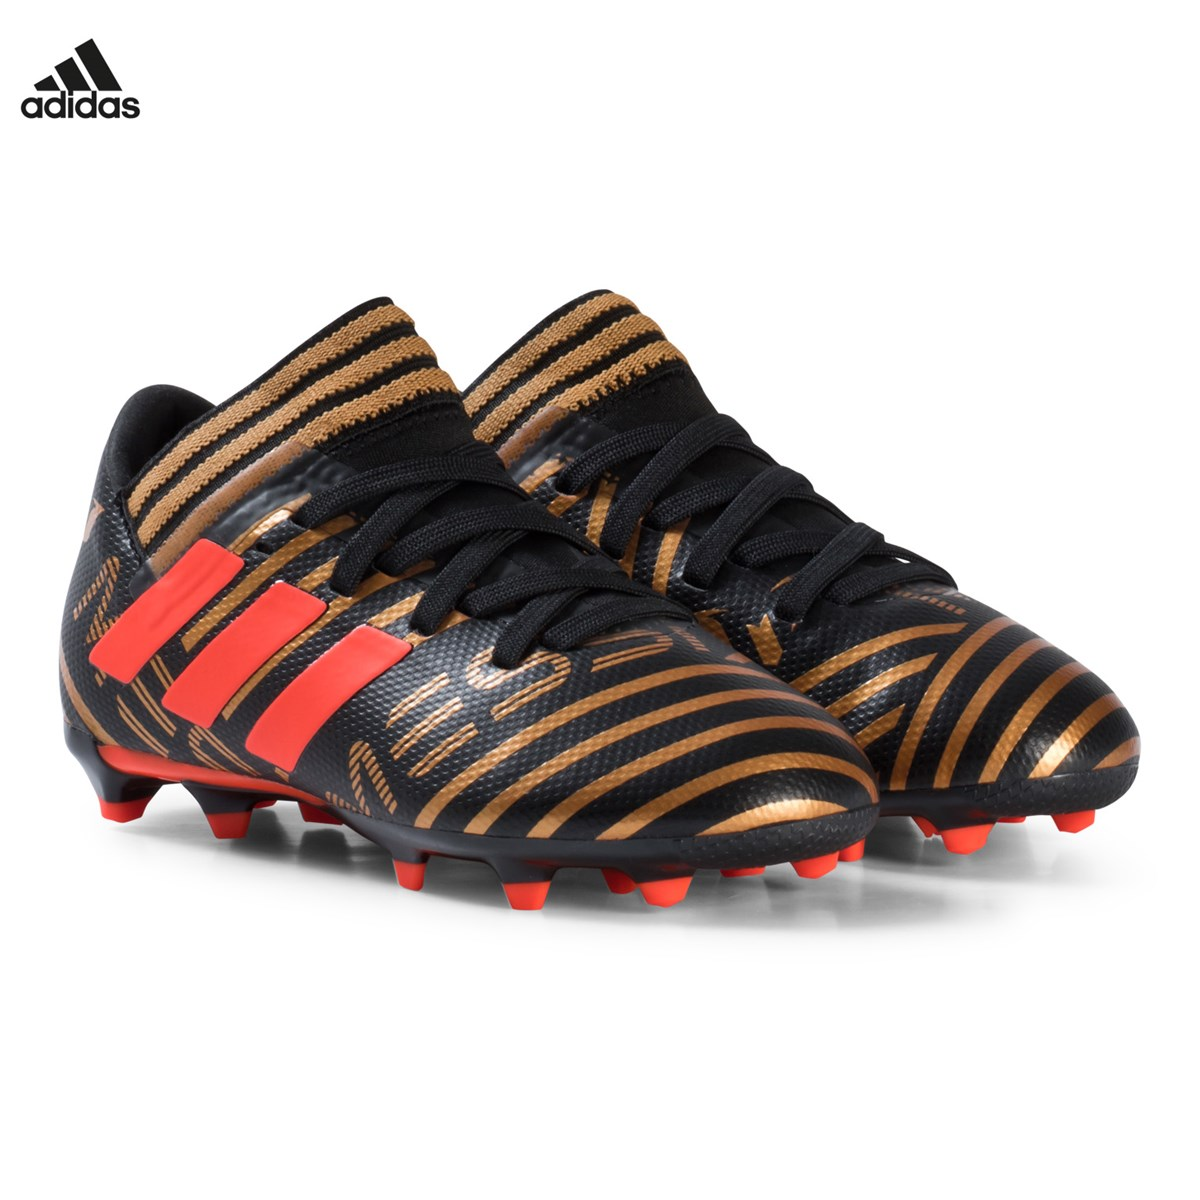 wholesale dealer 412bf dedf4 gold nemeziz messi 17.3 firm ground fotbollsskor adidas performance